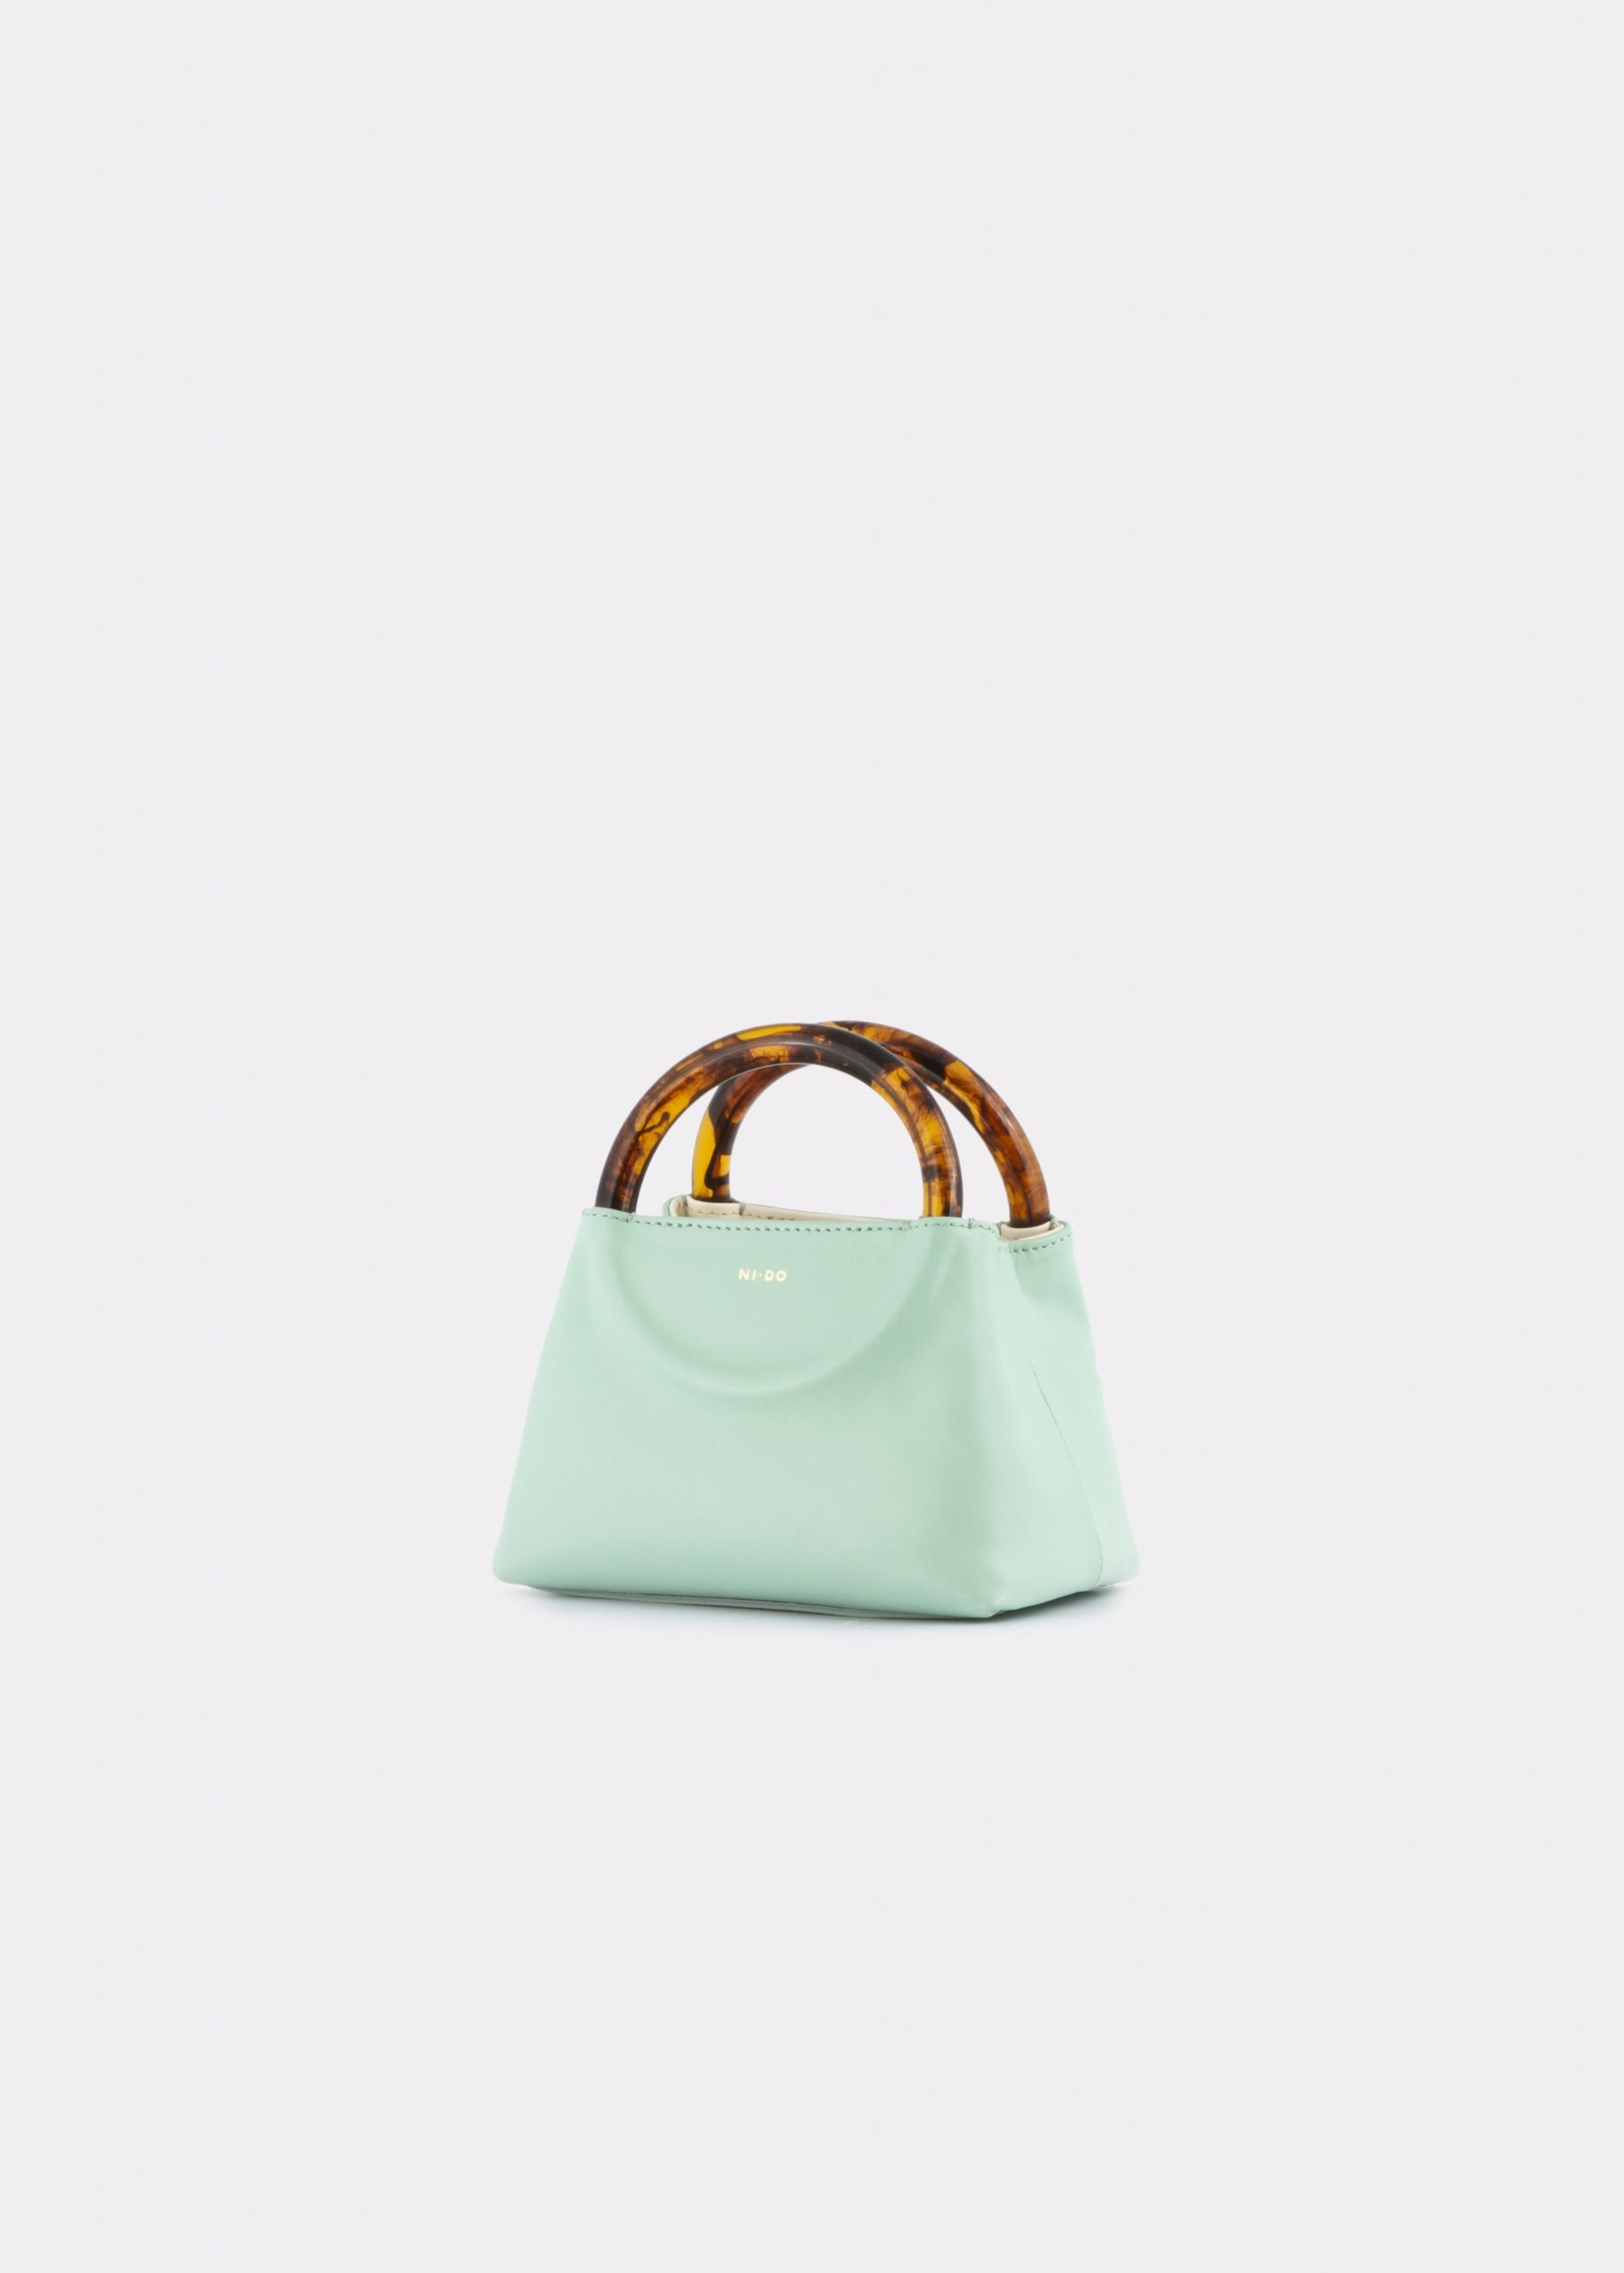 NIDO Bolla Micro bag Pastel Sky leather Amber_side view